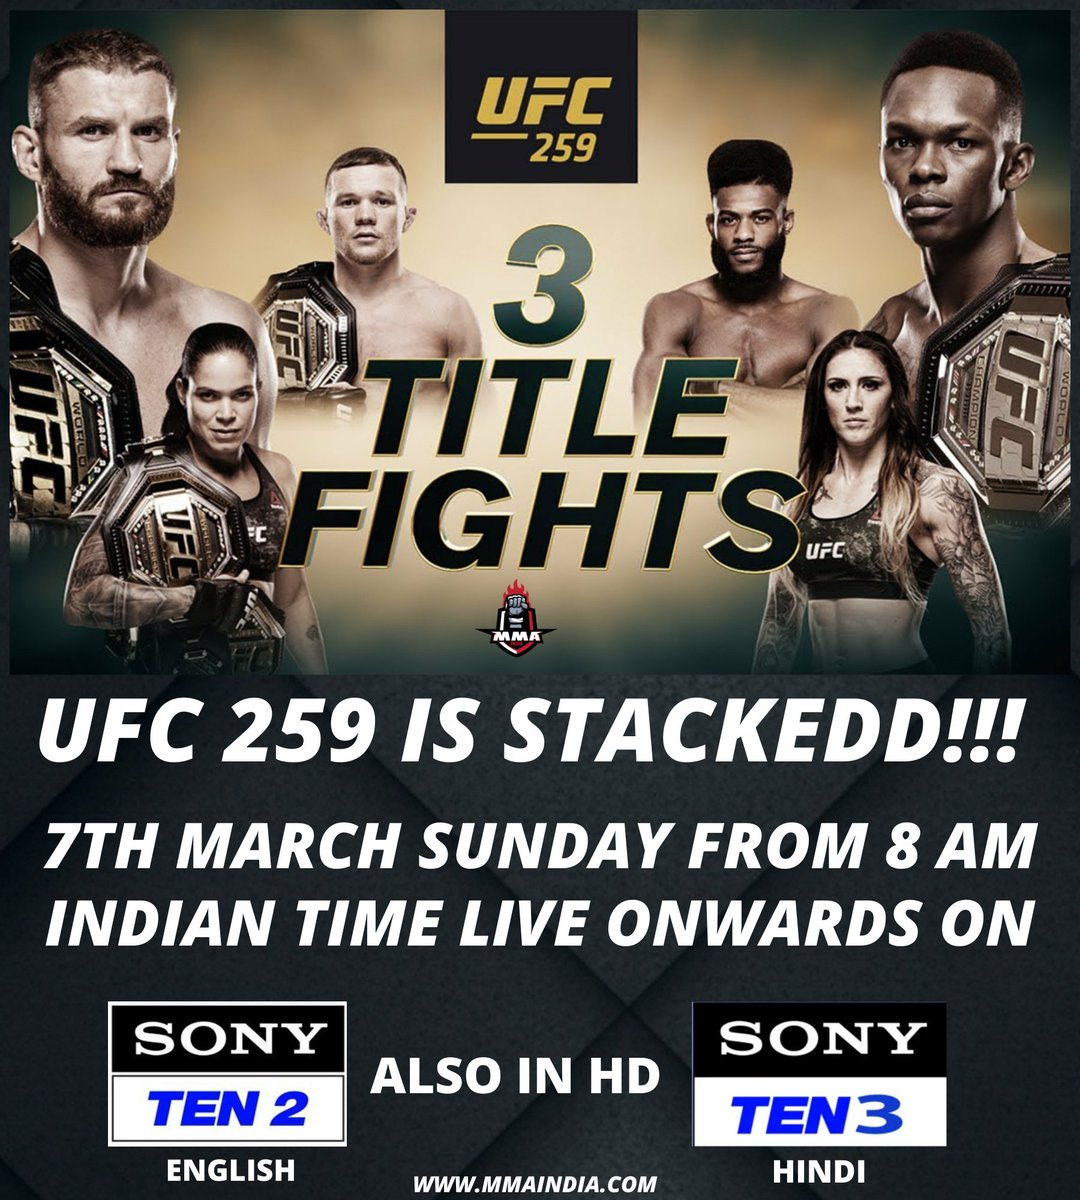 Four champions! Two No.1⃣ contenders  Start to finish, #UFC259 is LOADED with talent 🤩  Catch the live action of UFC 259 🇮🇳 👇  📺 Sony TEN 2 (ENG), Sony TEN 3 (HIN) 📅 SUN, 7th MARCH ⌚ 8 AM Onwards  #UFC #MMA @SonySportsIndia